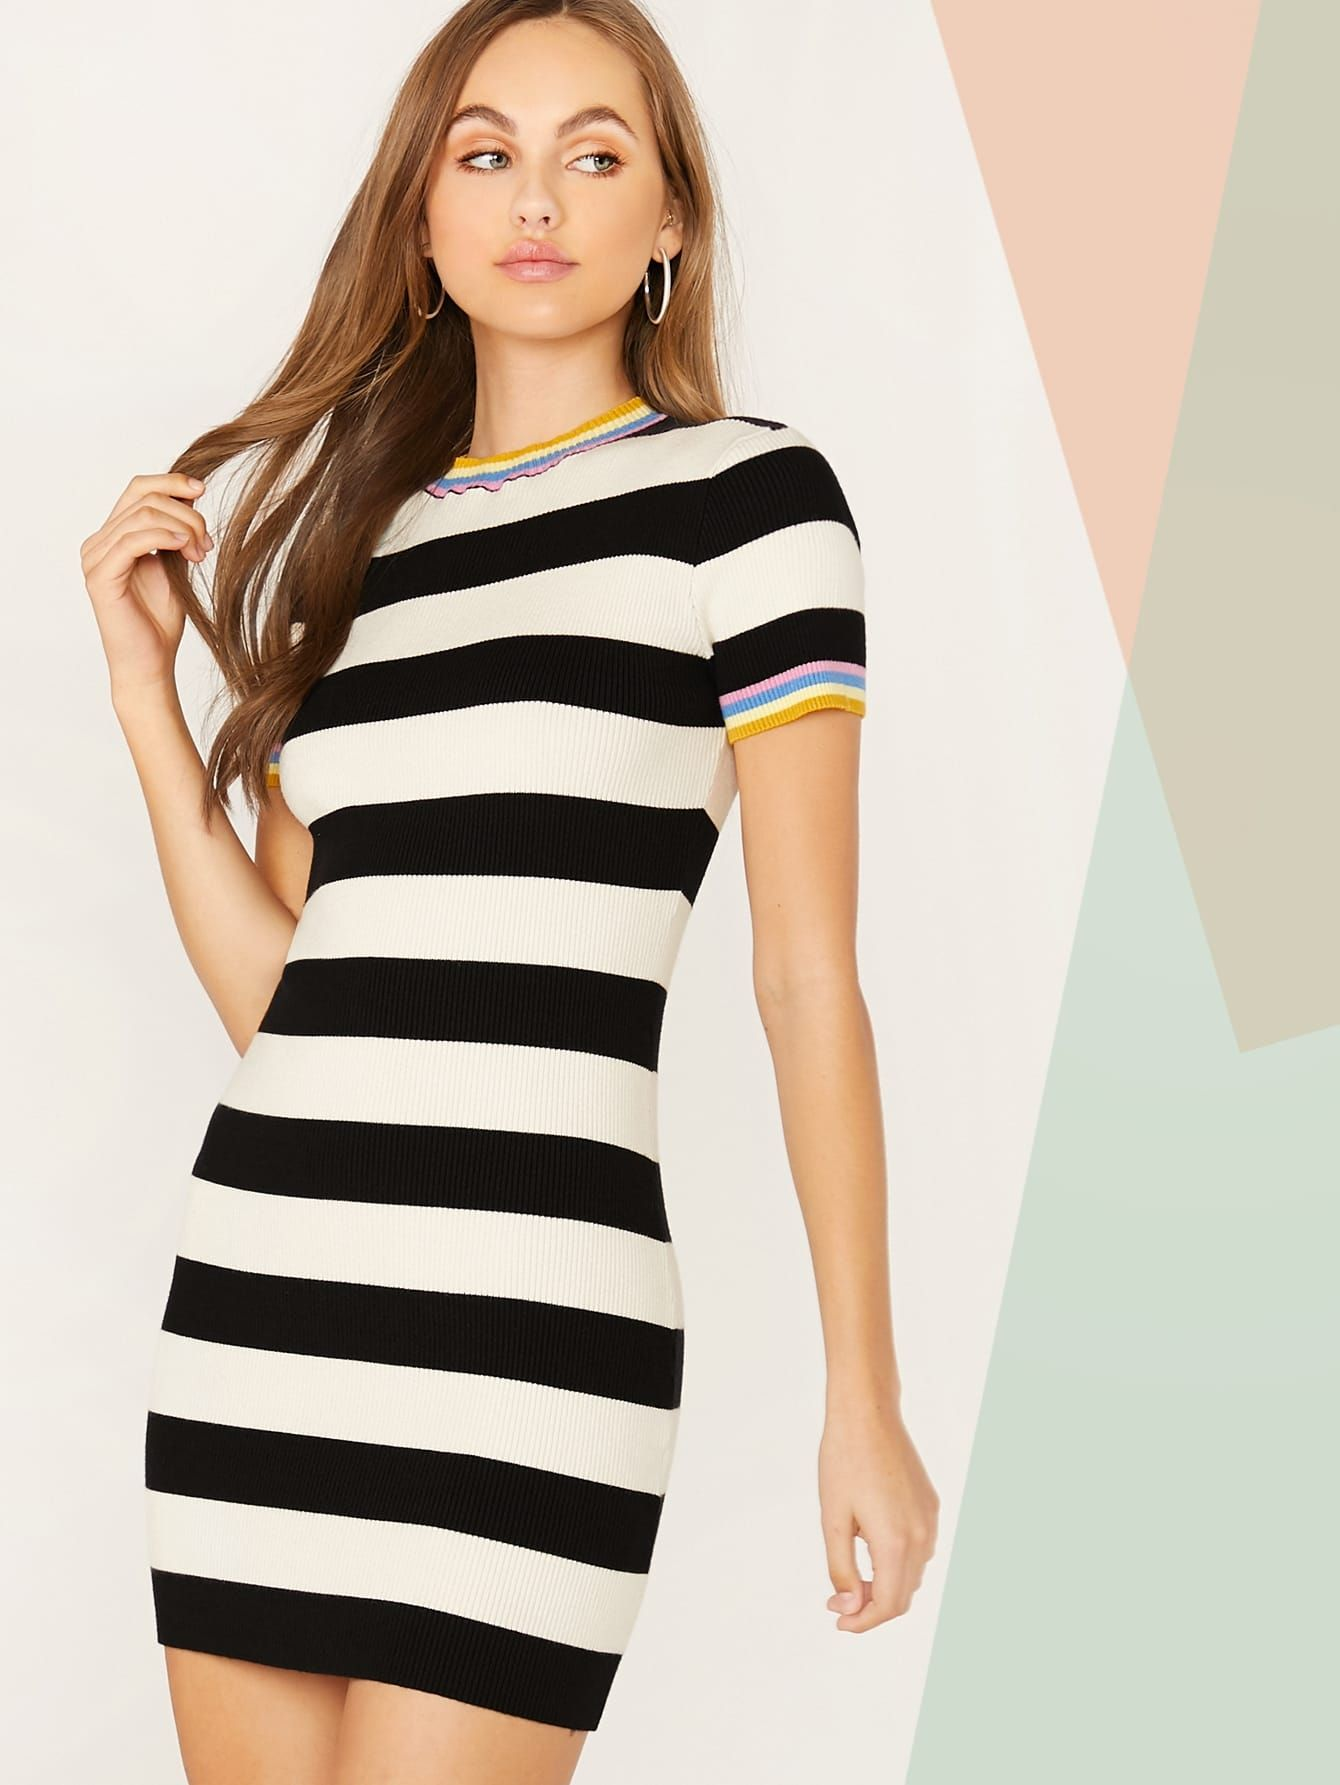 Ad Fitted Striped Sweater Dress Tags Elegant Black And White Striped Rainbow Stripe Round Neck Mi Striped Sweater Dress Sweater Dress Ribbed Knit Dress [ 1785 x 1340 Pixel ]